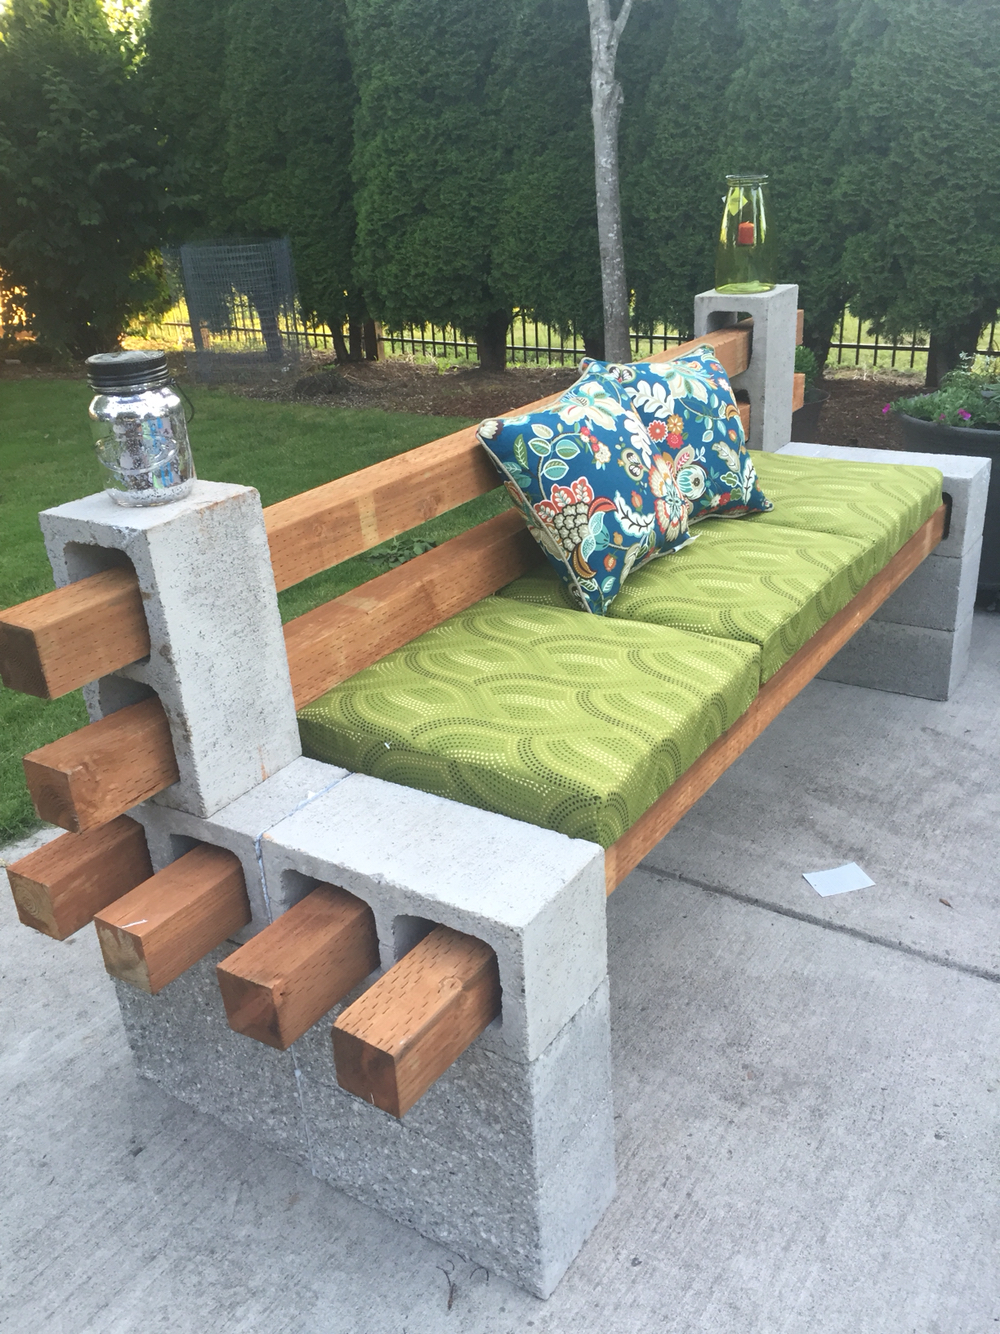 Swell 25 Outdoor Bench Projects Defining The Concept Of Lamtechconsult Wood Chair Design Ideas Lamtechconsultcom